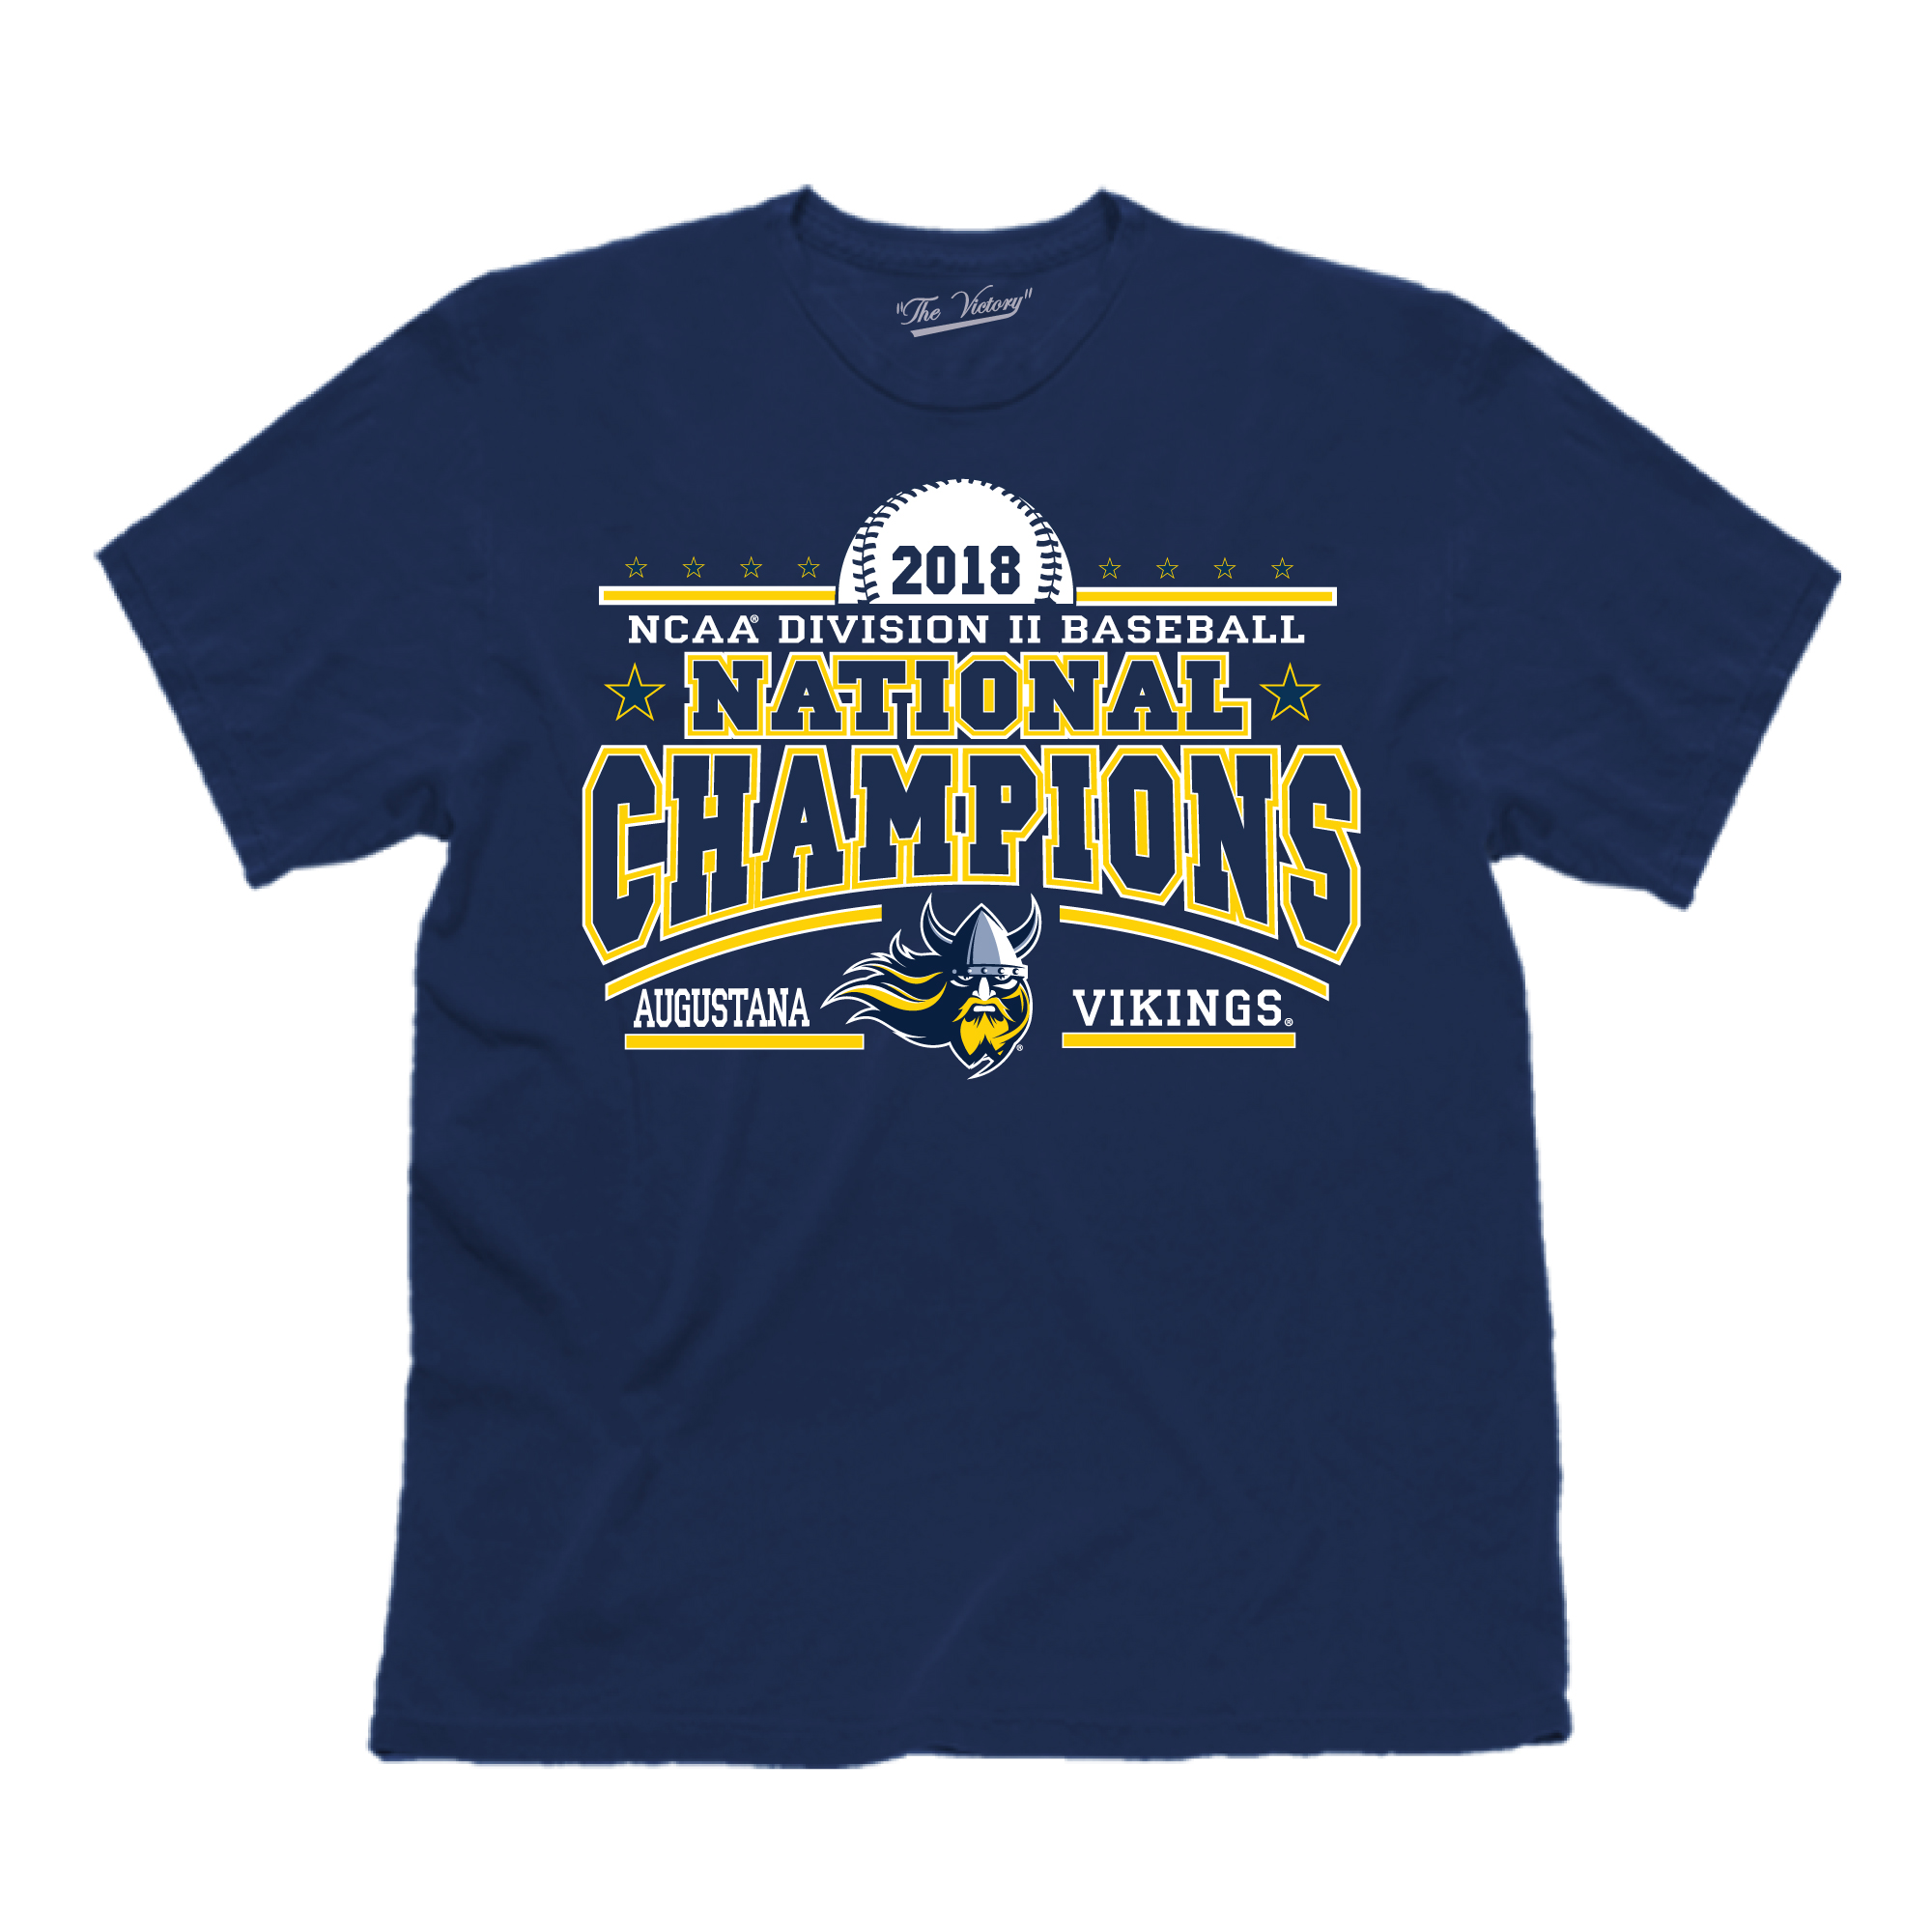 National Championship Shirts Now Available